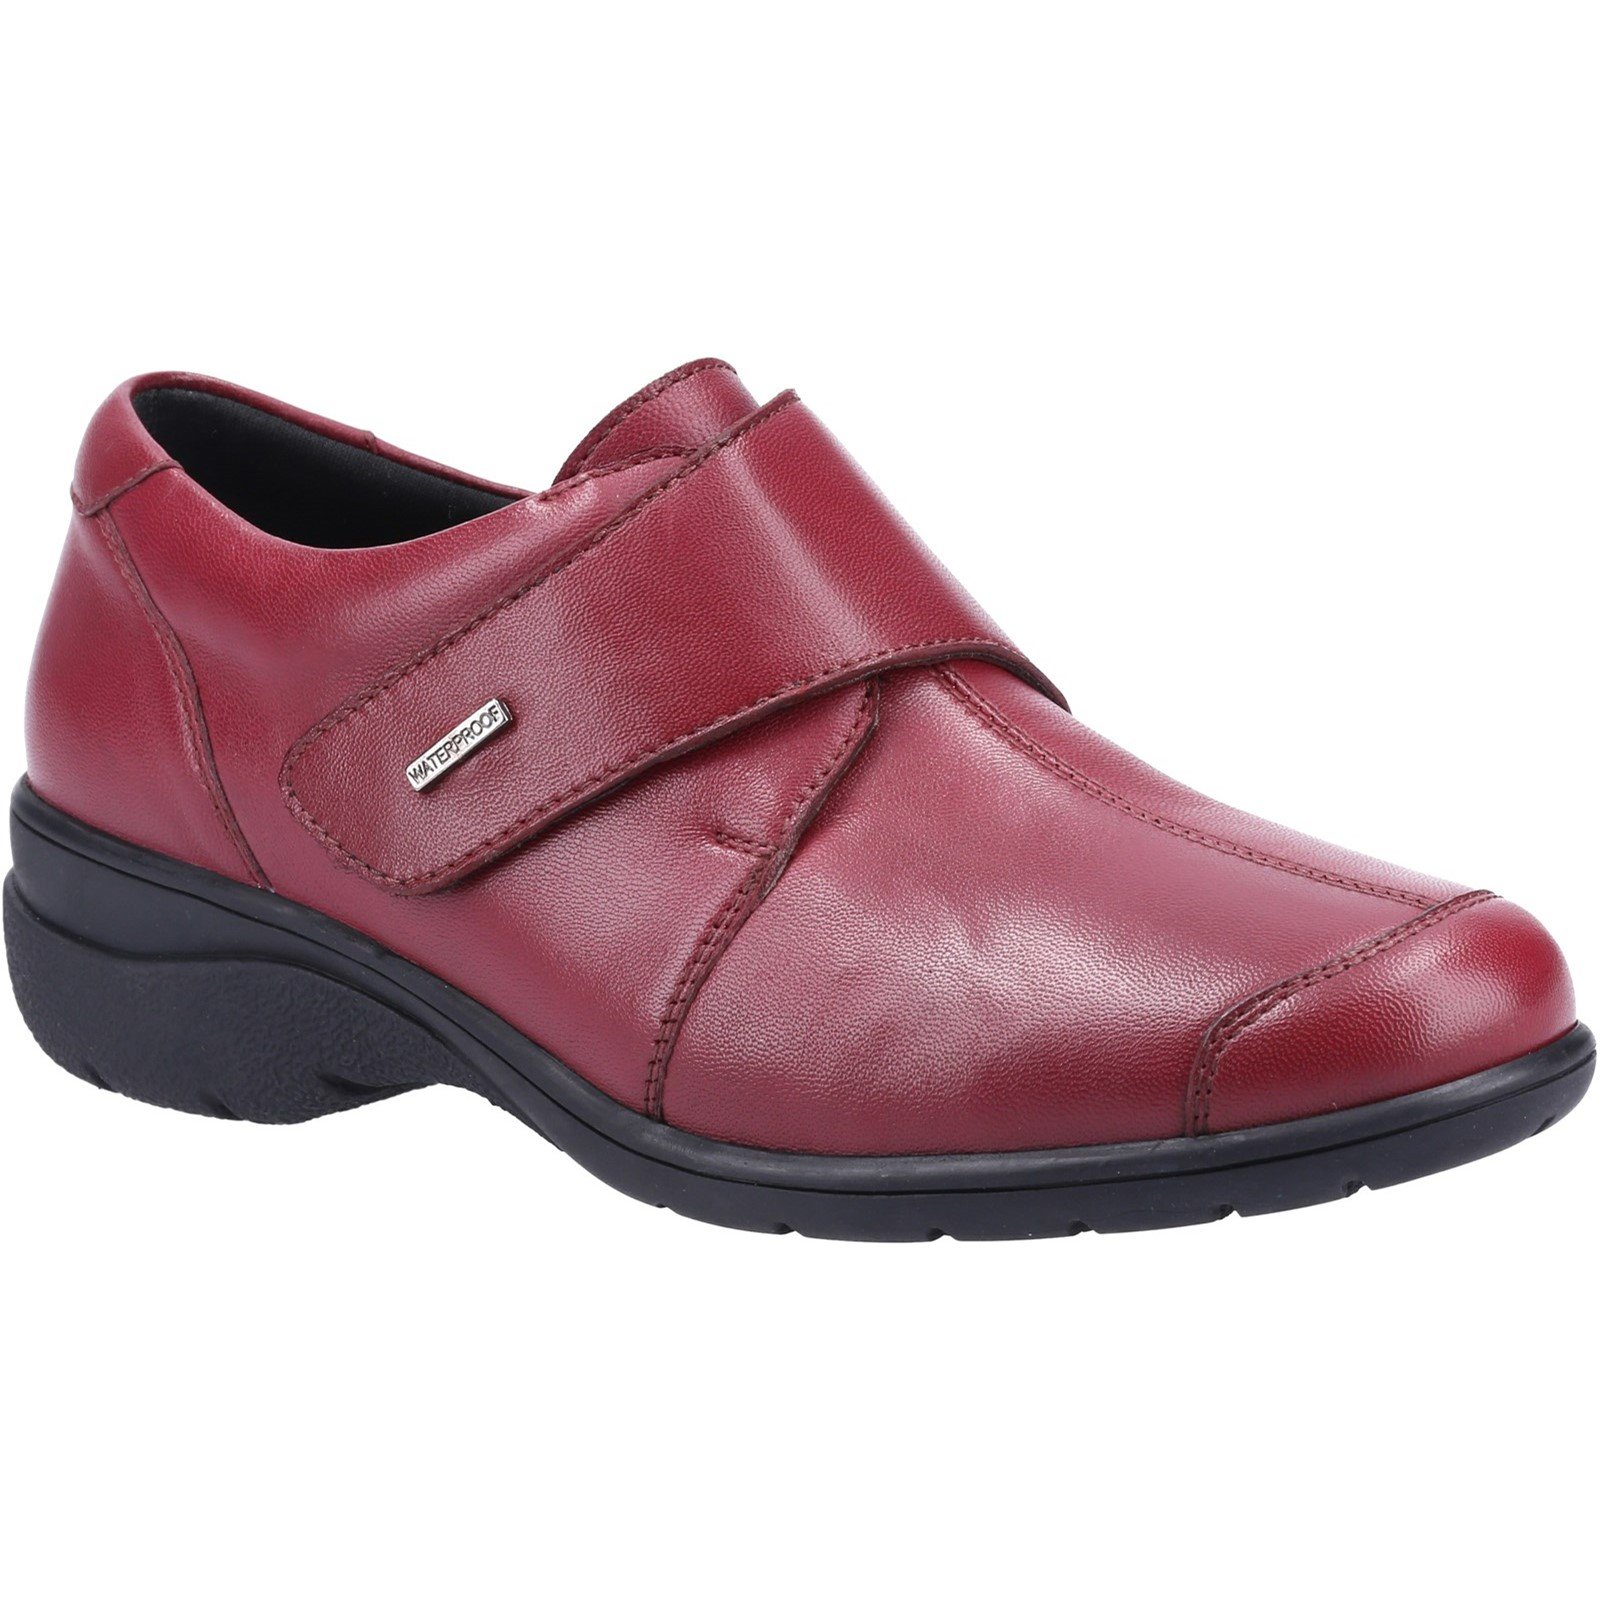 Cotswold Women's Cranham Touch Fastening Trainer Various Colours 32980 - Red 7